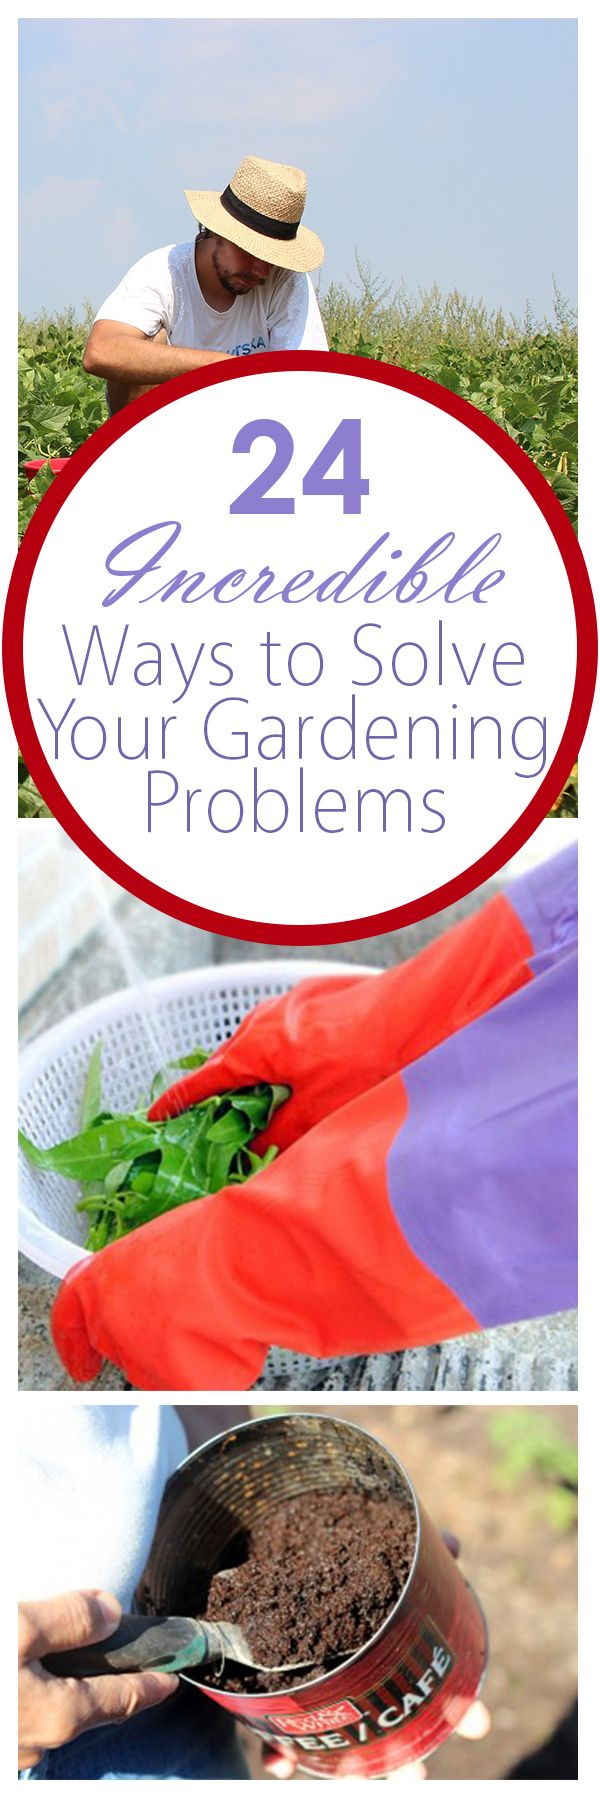 Solve some of the most obnoxious gardening problems with